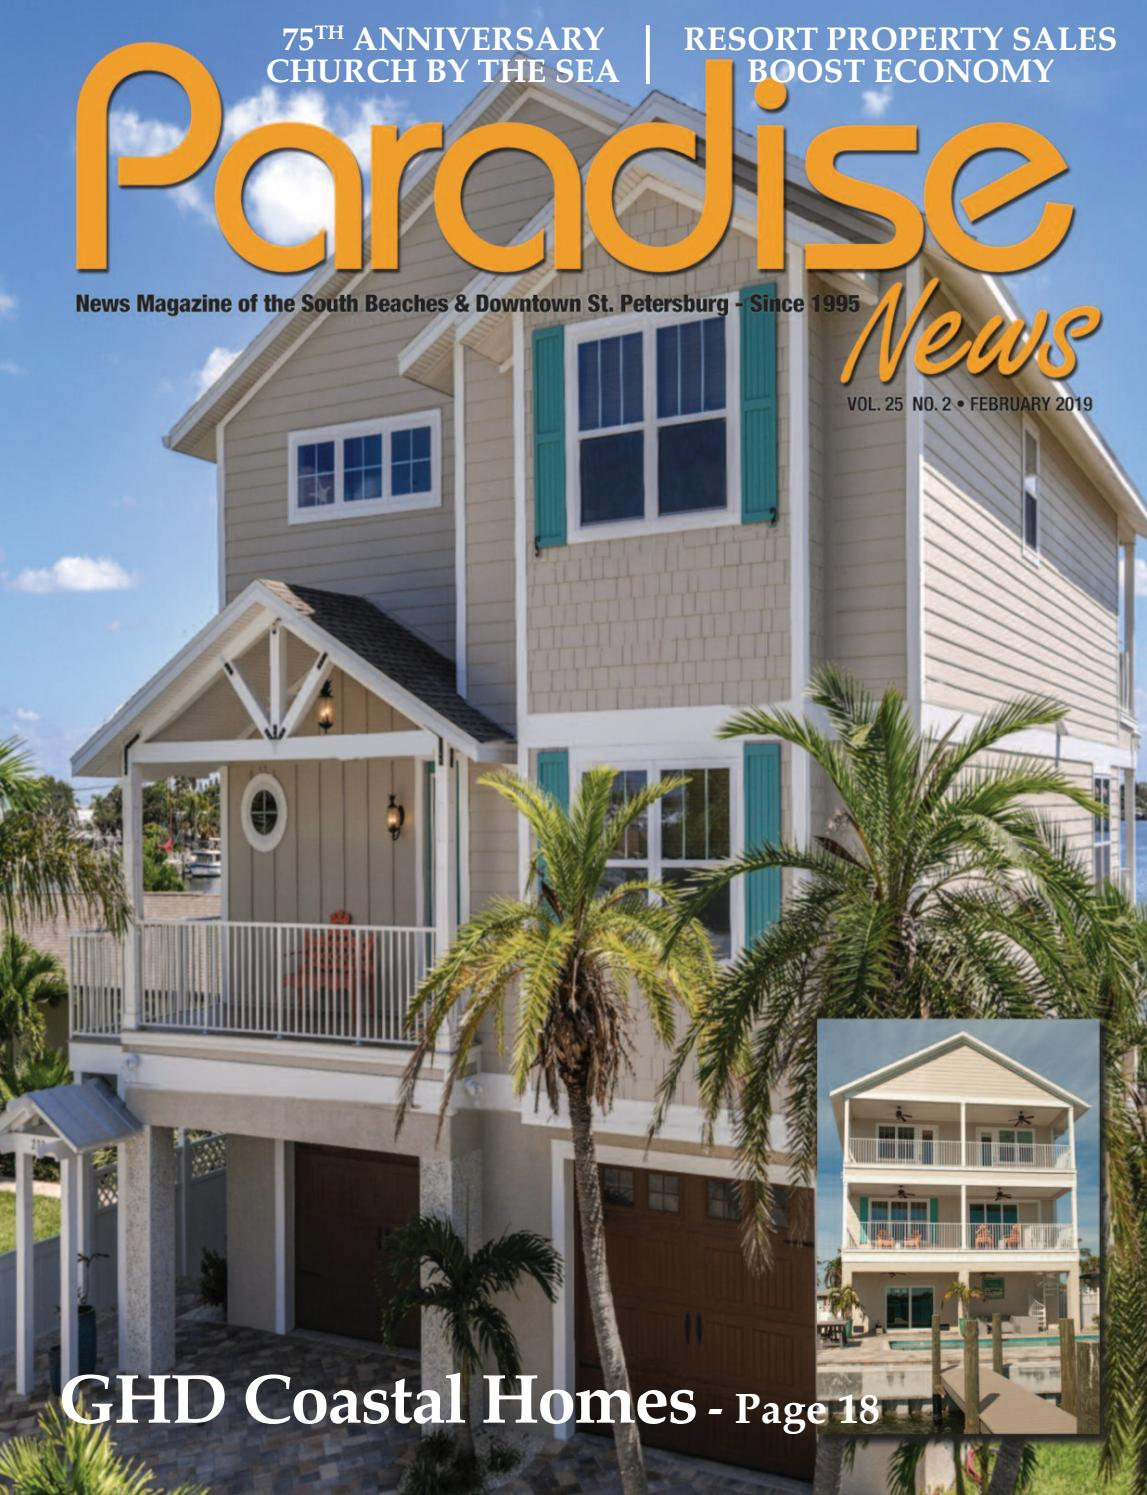 bamboo source tropical home decor with red sofa and blue.htm paradise news february 2019 issue by paradisenewsfl issuu  february 2019 issue by paradisenewsfl